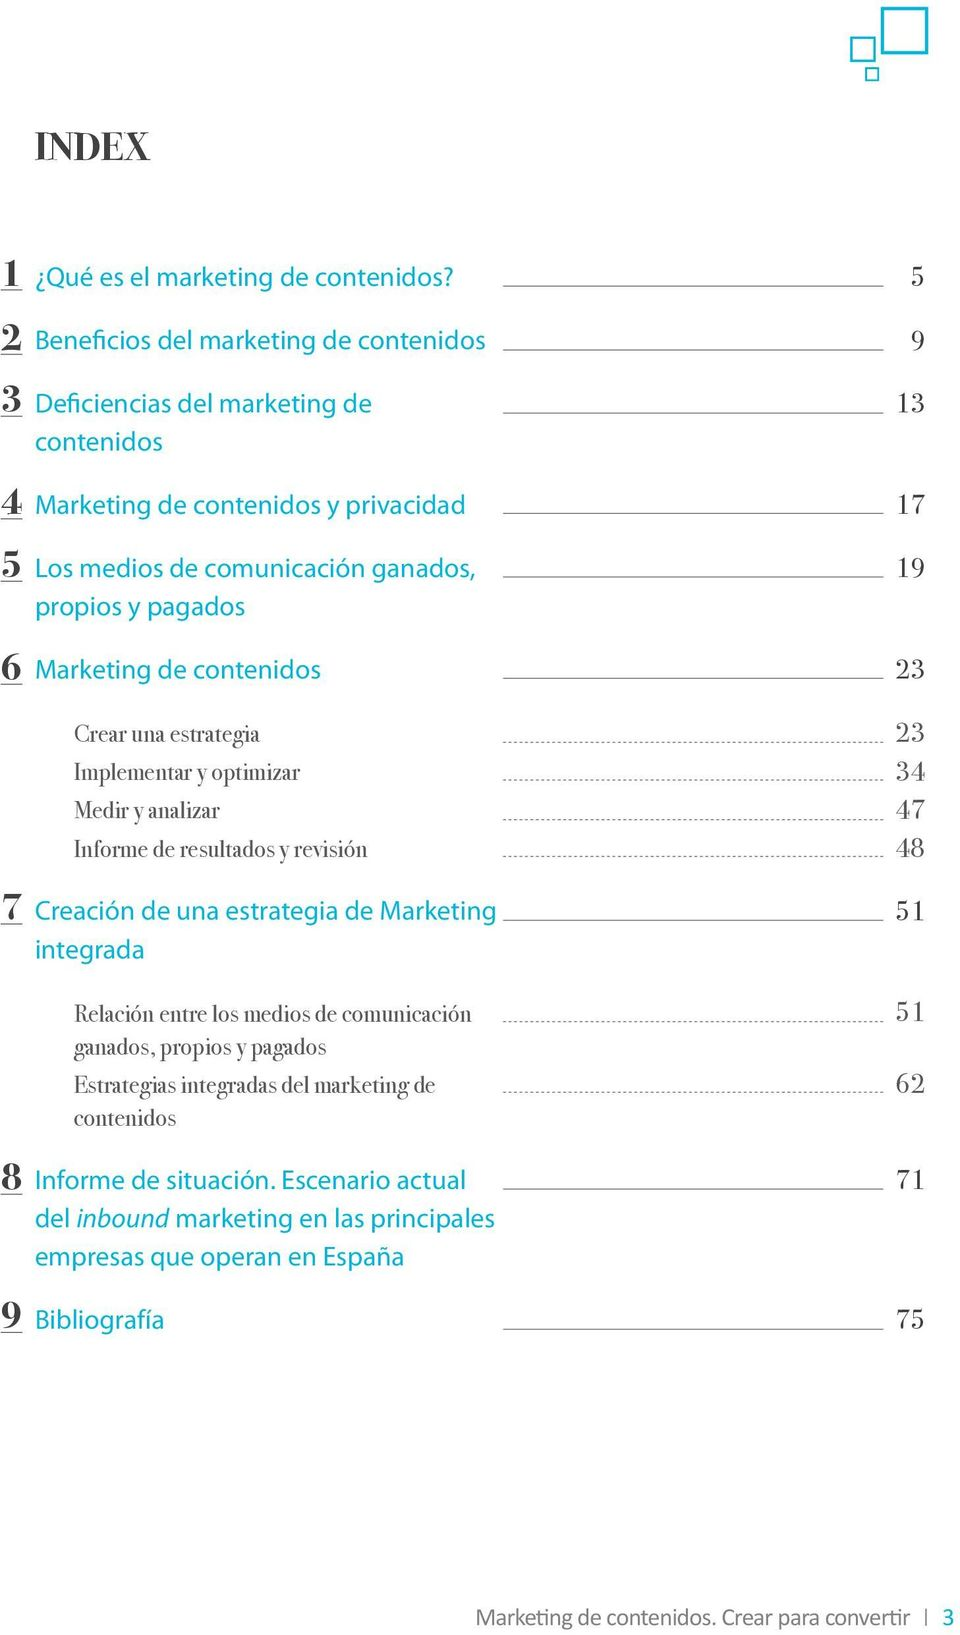 Marketing de contenidos 9 13 17 19 23 7 8 Crear una estrategia Implementar y optimizar Medir y analizar Informe de resultados y revisión Creación de una estrategia de Marketing